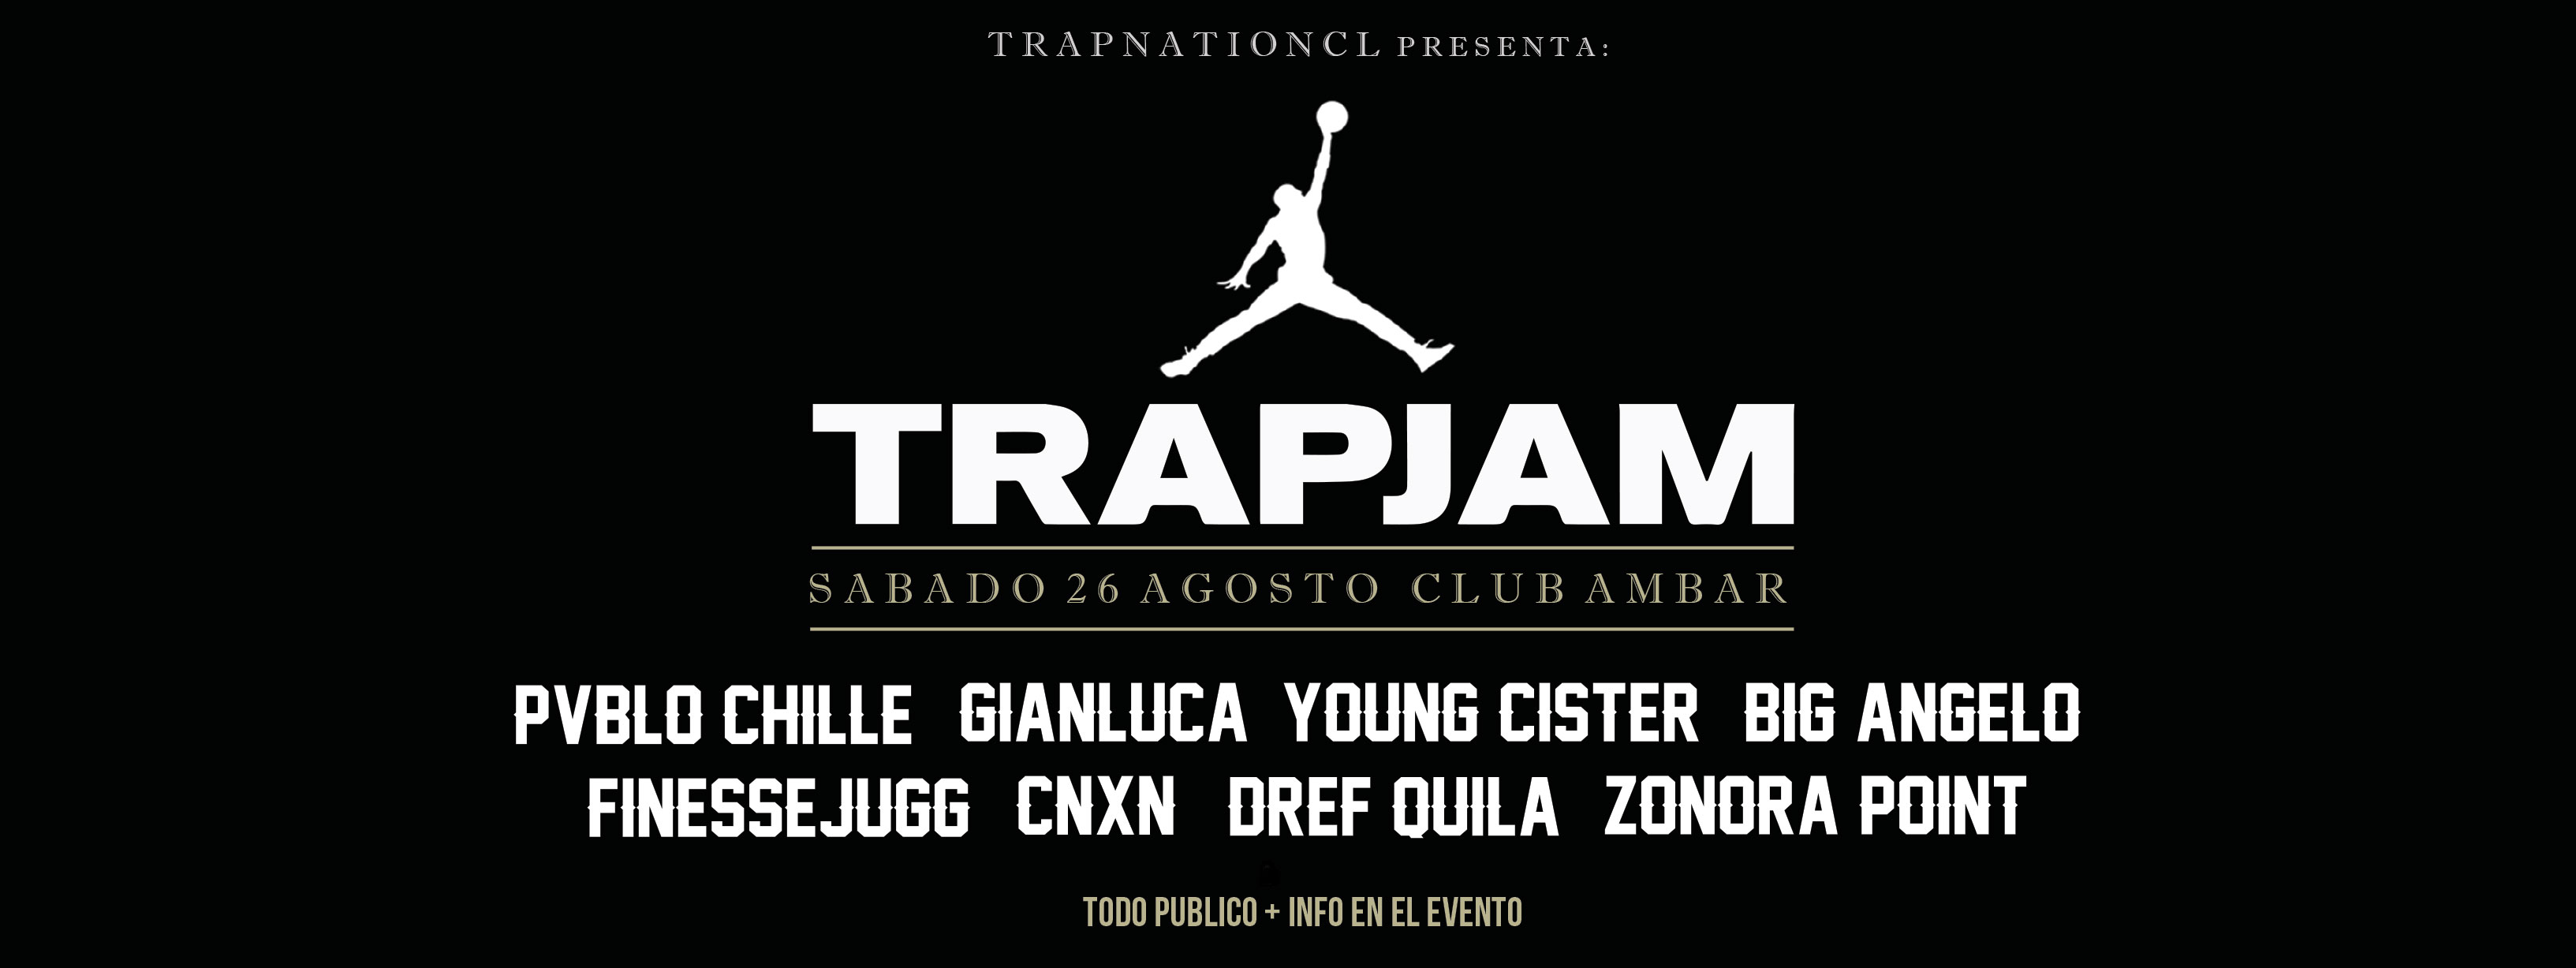 Trapjam banner final2 eco